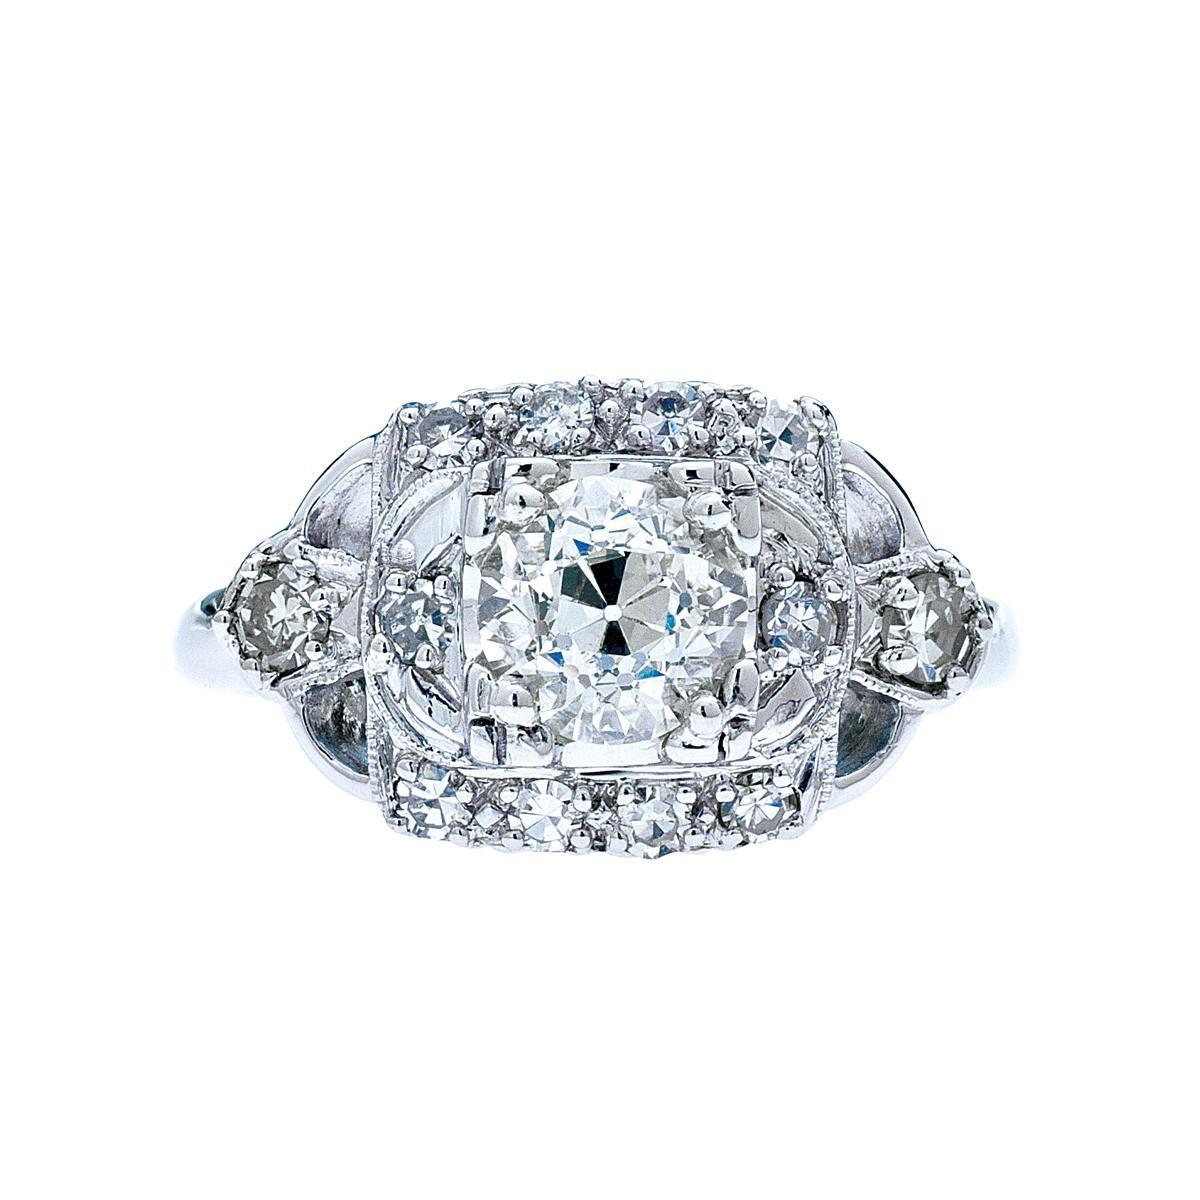 Vintage Art Deco Inspired 1.42 CTW Diamond Ring